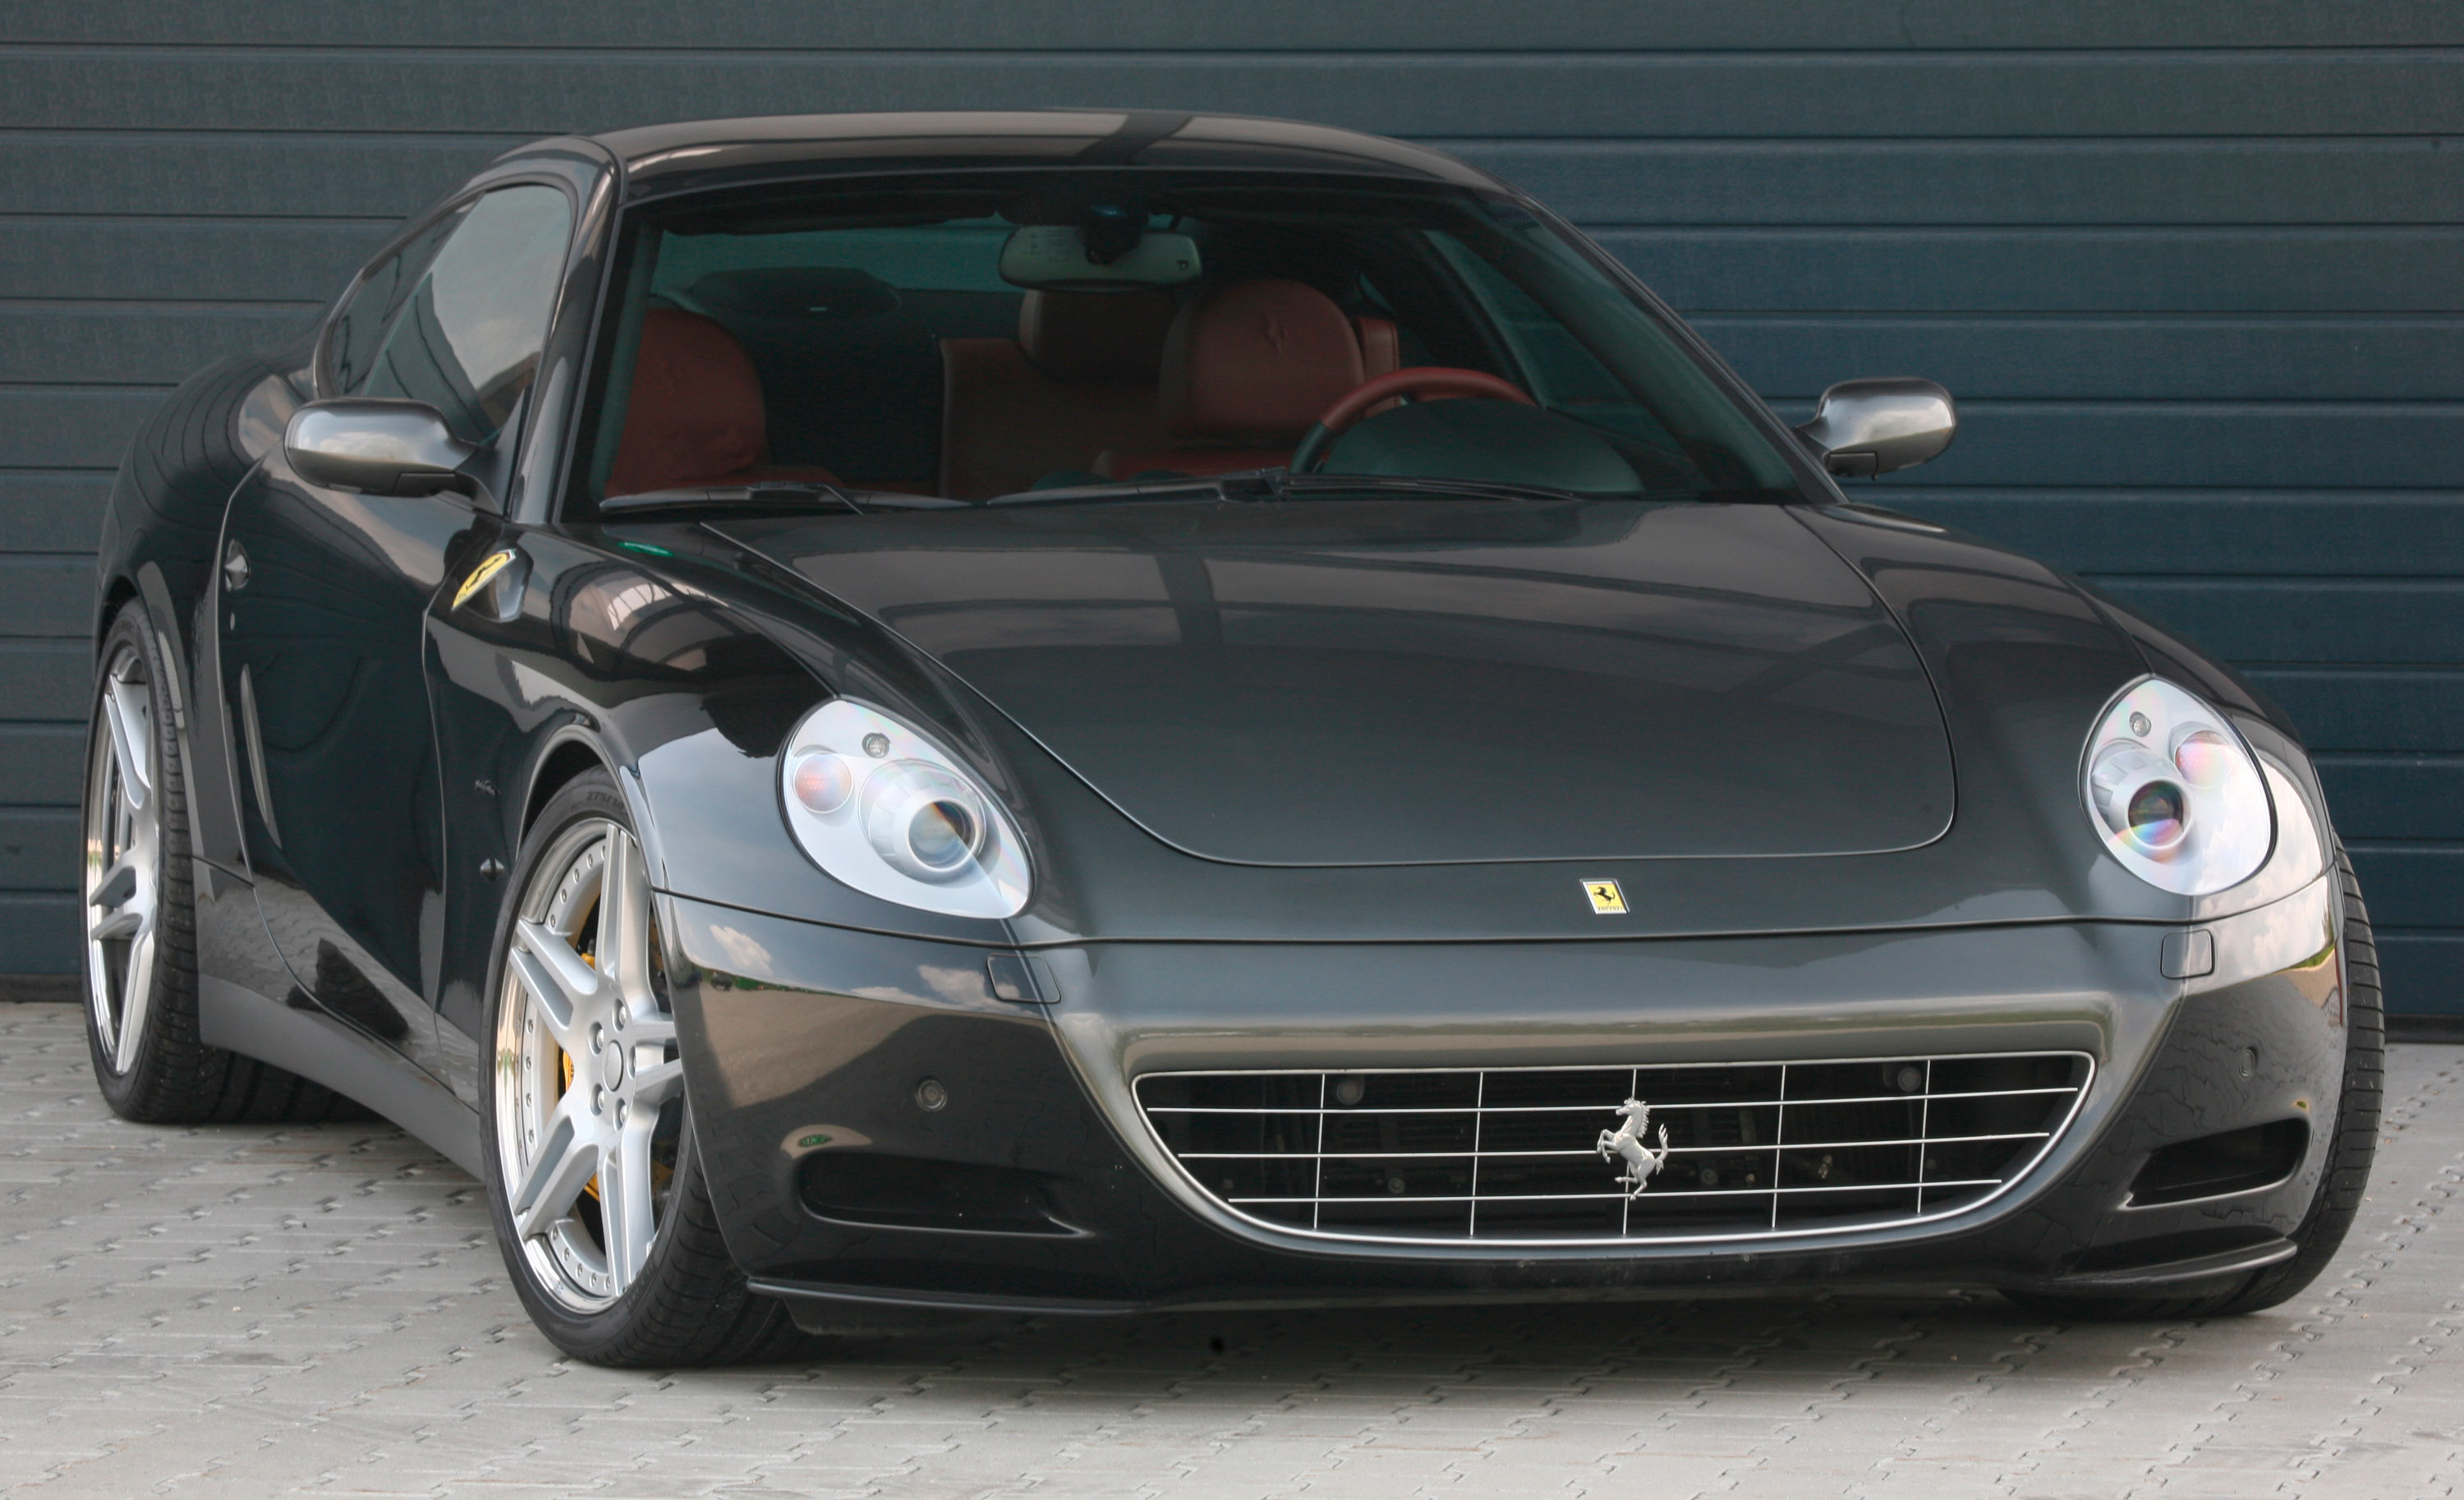 ferrari 612 scaglietti 2010 2 ferrari 612 scaglietti 2010 3 ferrari. Cars Review. Best American Auto & Cars Review